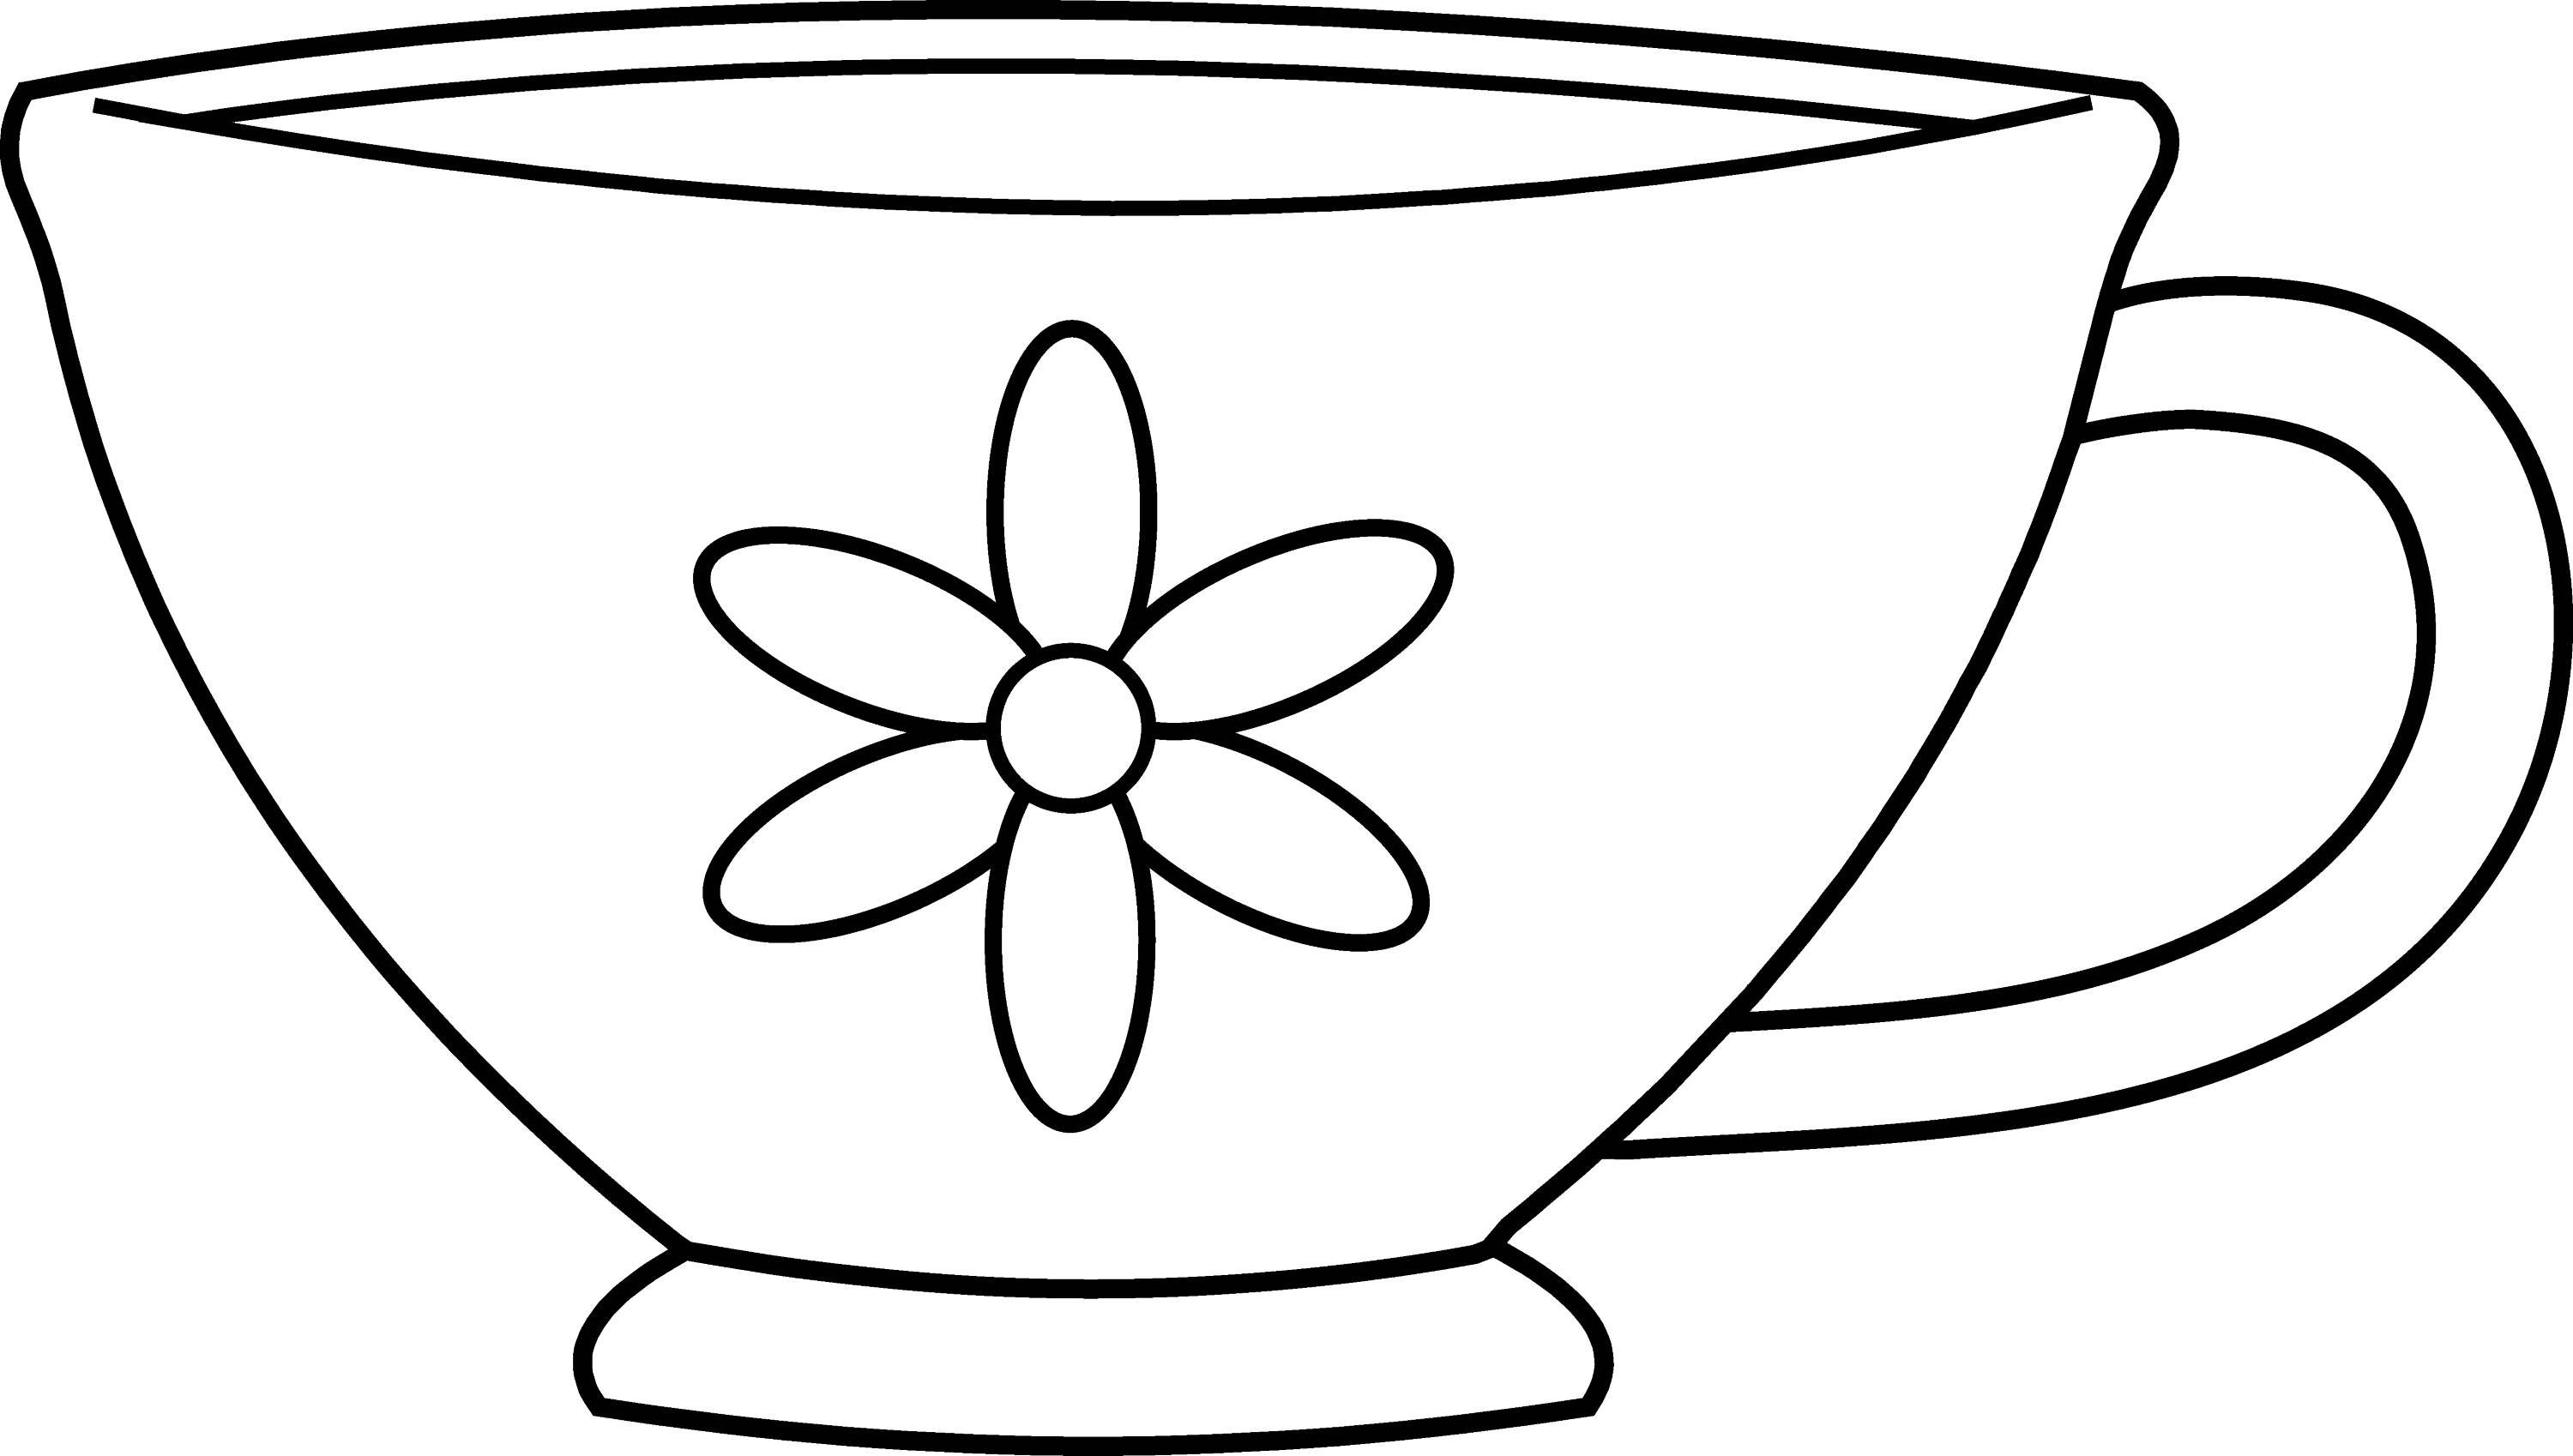 printable tea cup coloring pages - photo#21